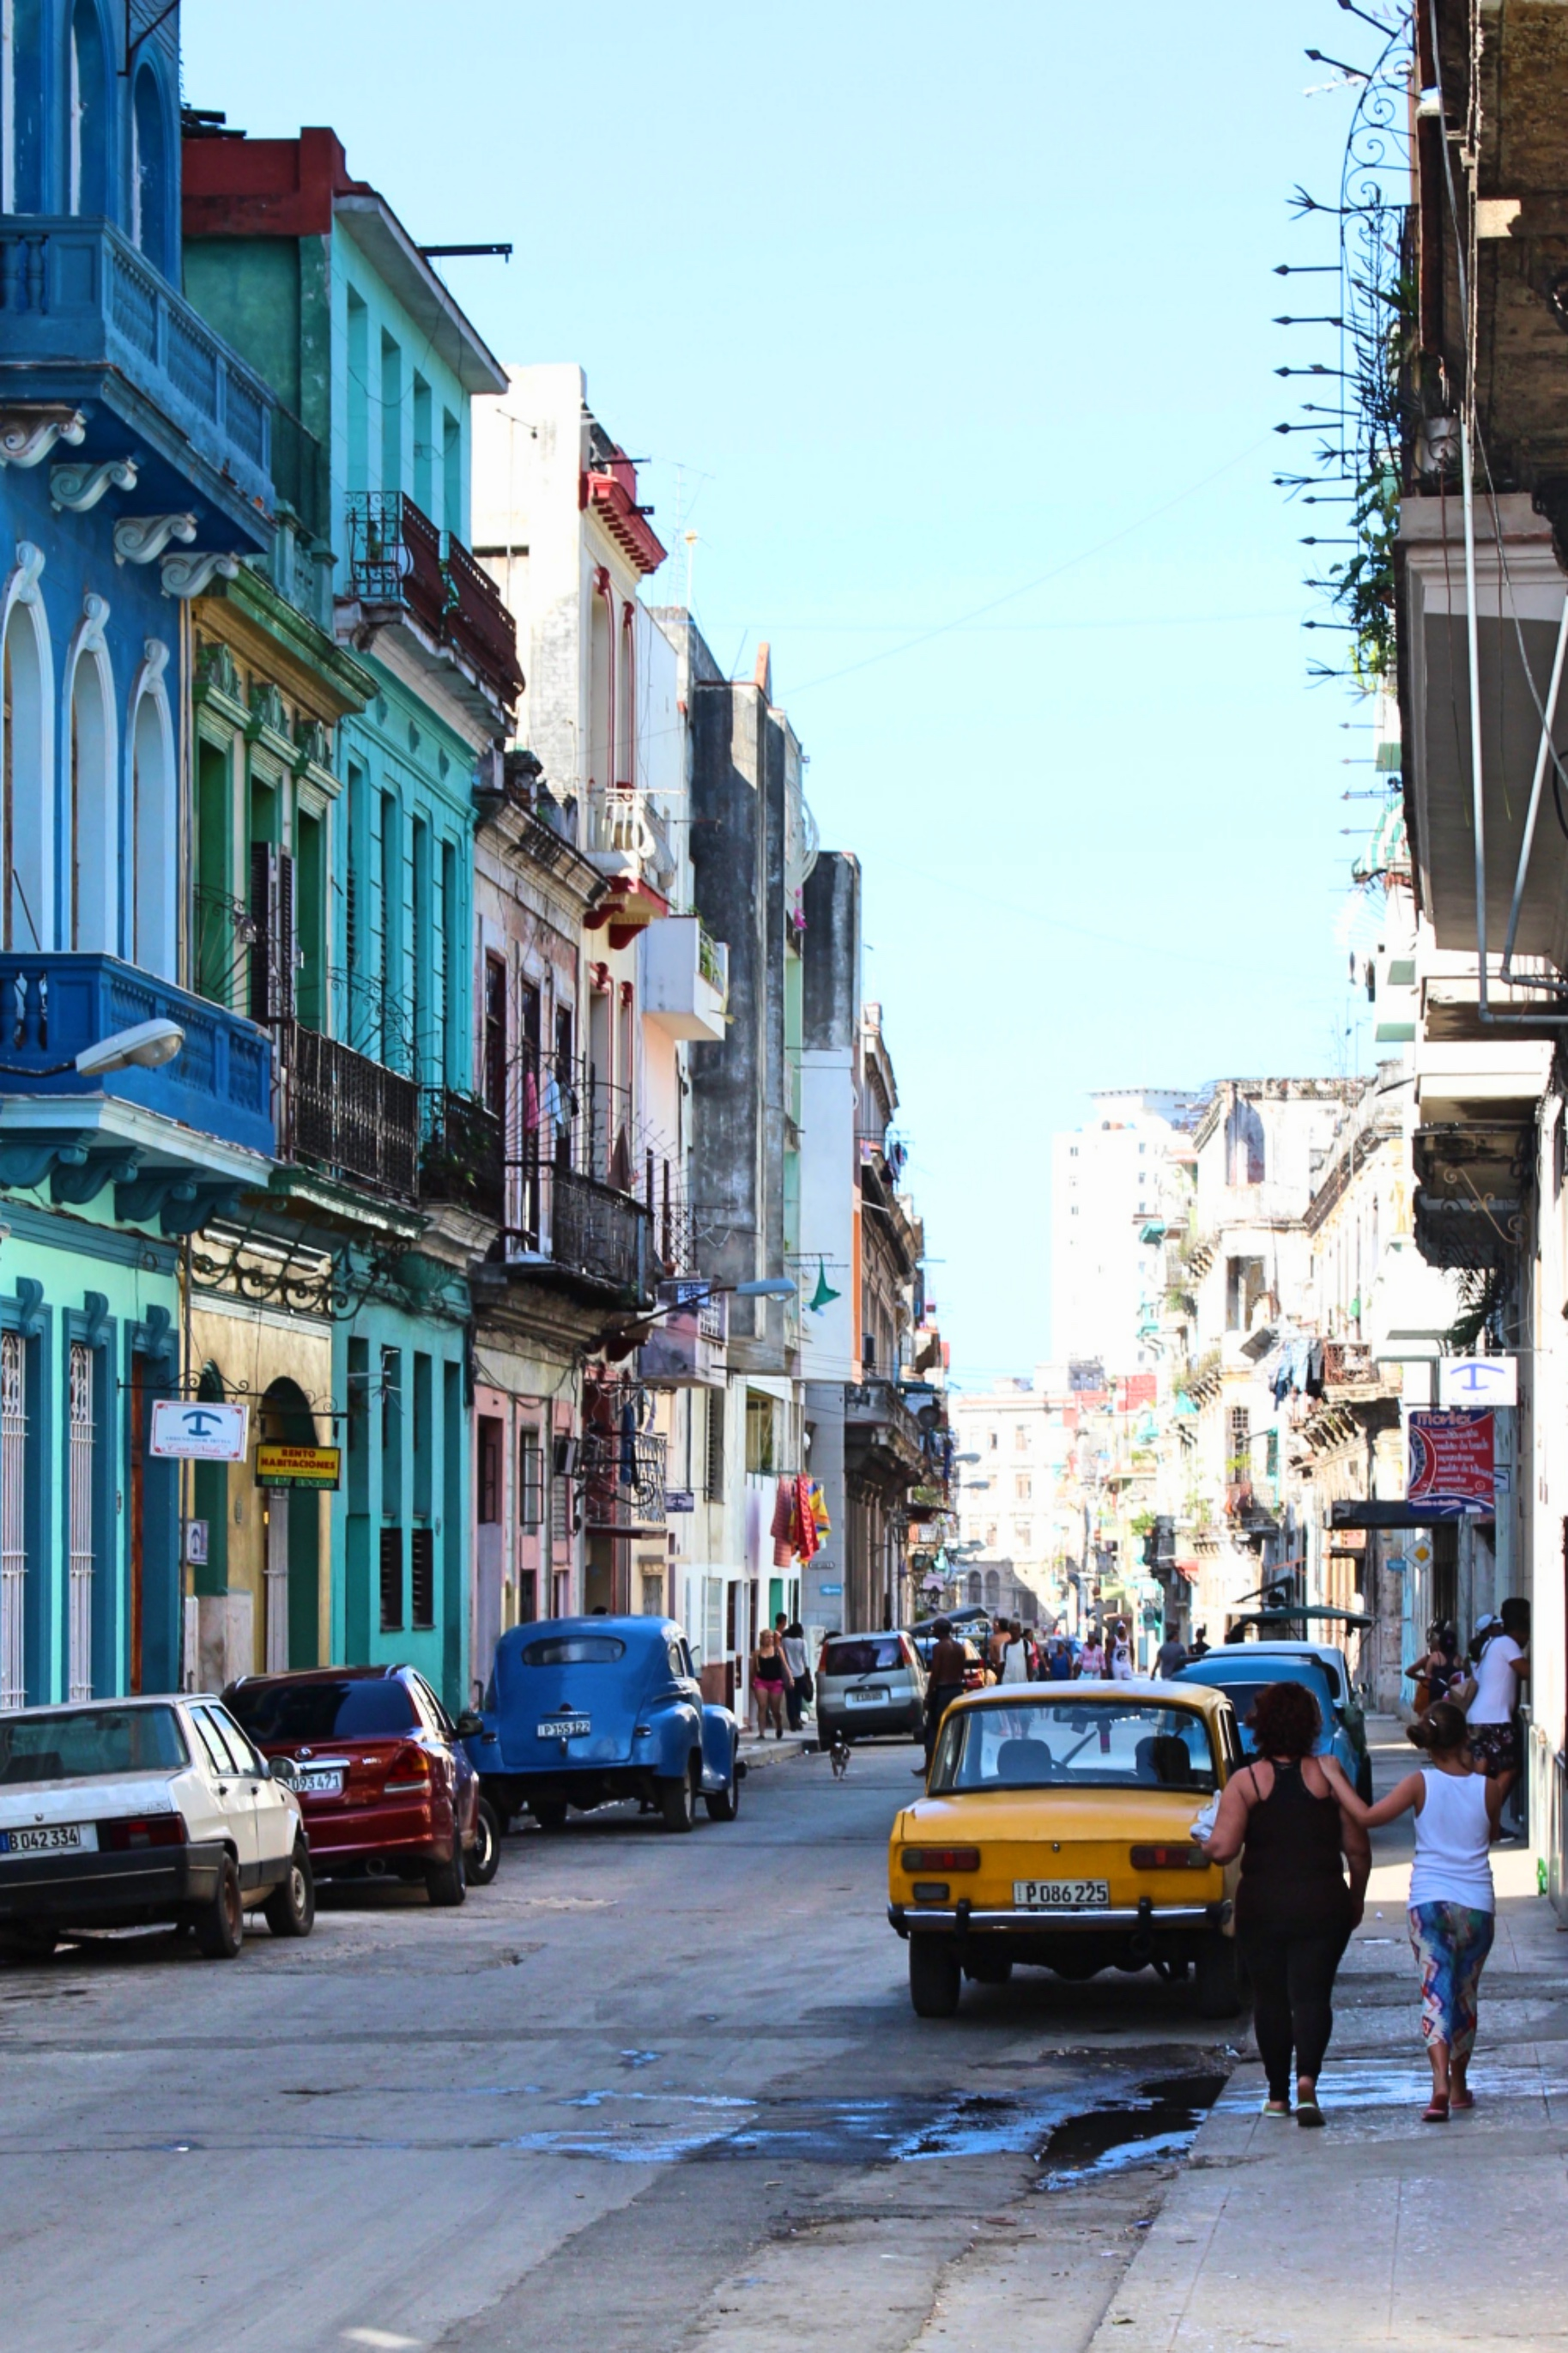 Lots of Blues and Yellows around the city. Cuban colours.